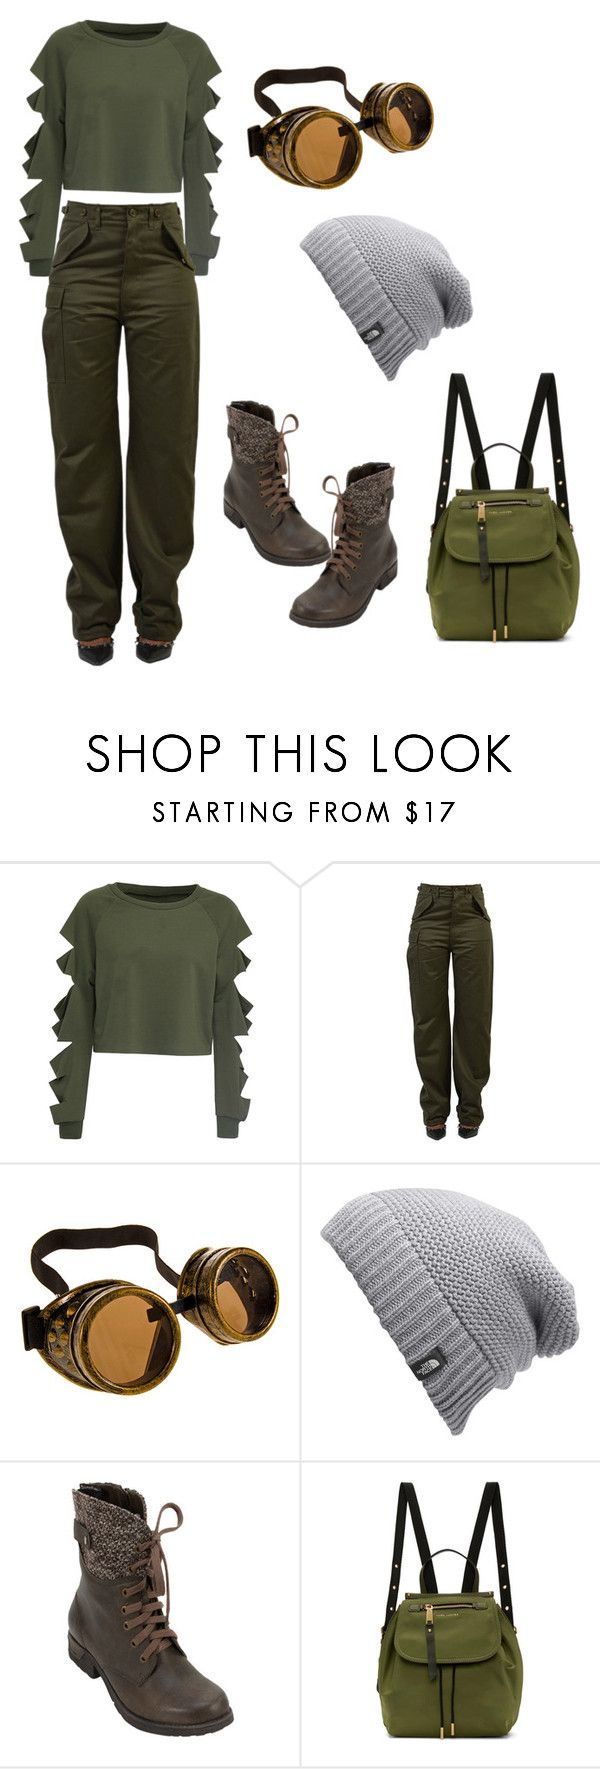 """Mila's casual wear #4"" by pantsulord ❤ liked on Polyvore featuring WithChic, Balenciaga, The North Face, White Mountain and Marc Jacobs"